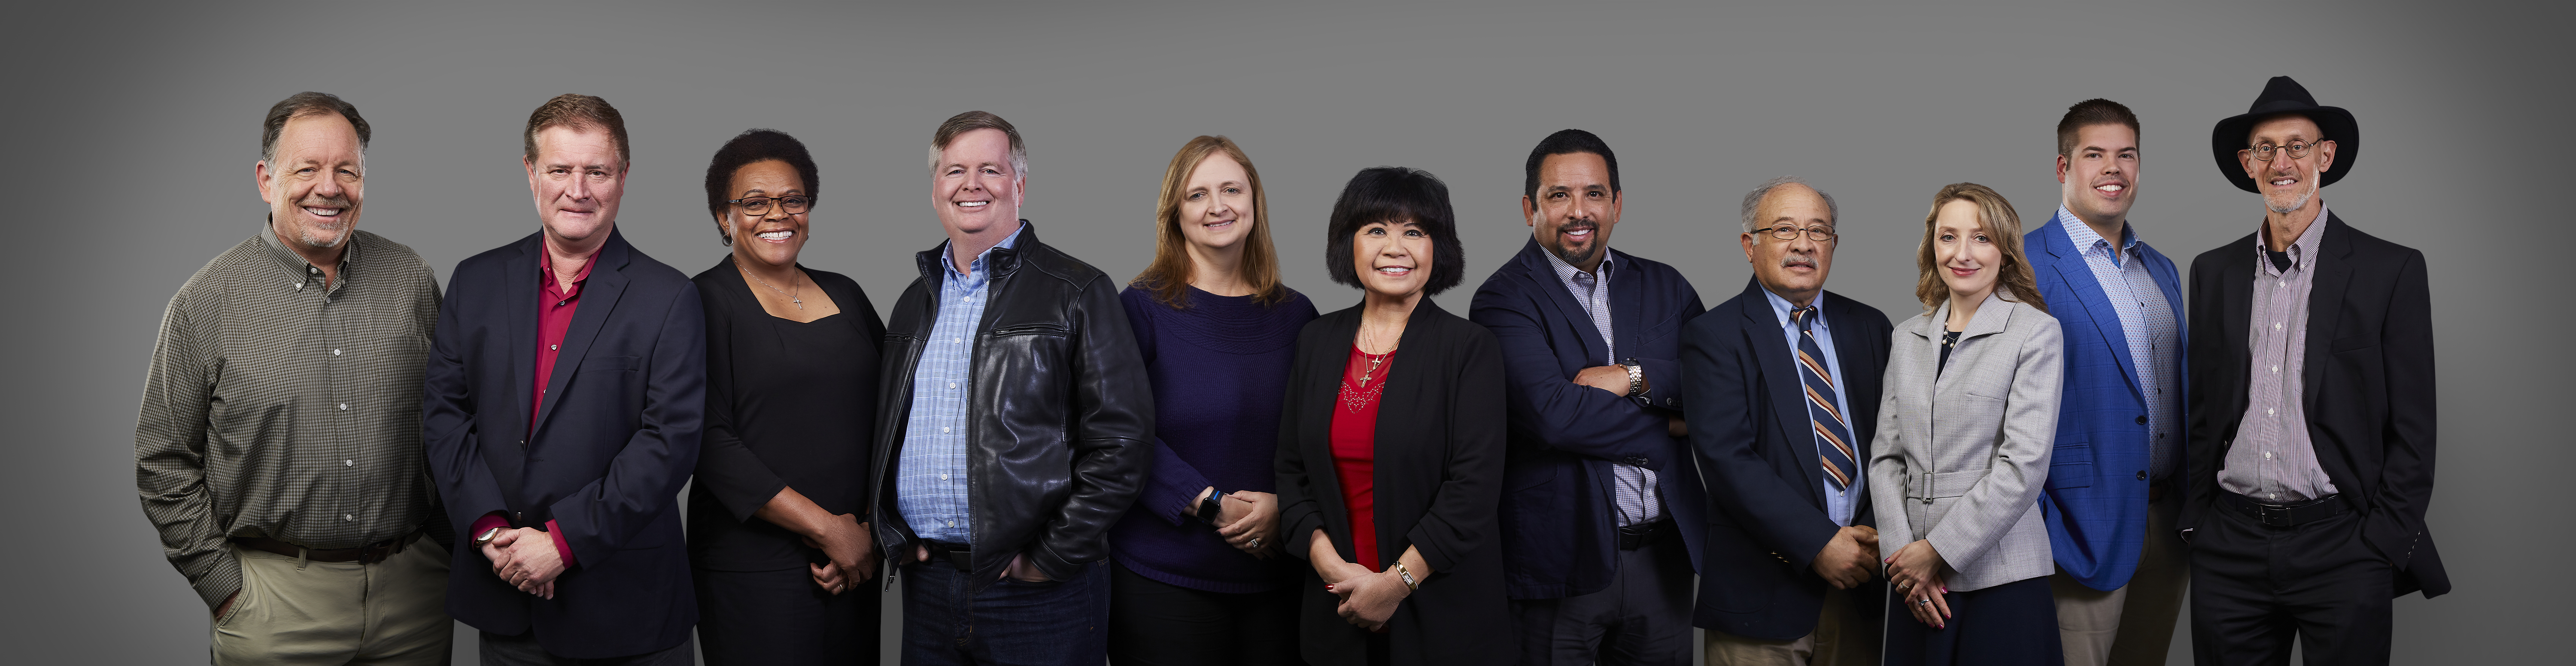 UNCLE Credit Union Names 2021-2022 Board of Directors and Officers thumbnail